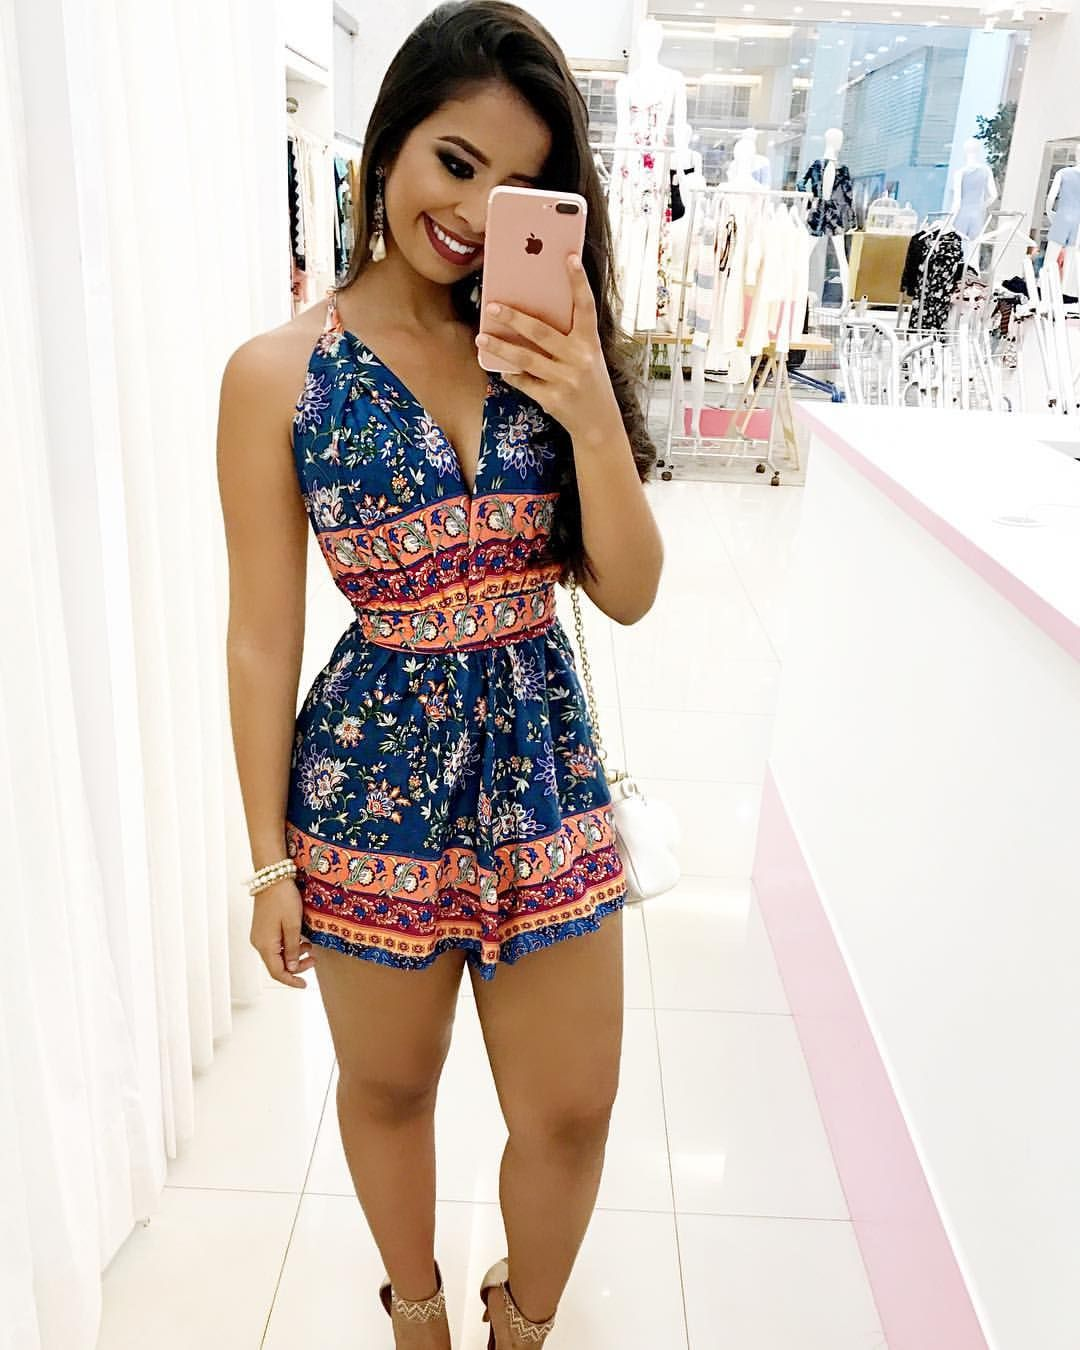 Instagram, Girls, Issa, Clothing Ideas, Retail, Overall Shorts, Shops,  Little Girls, Daughters